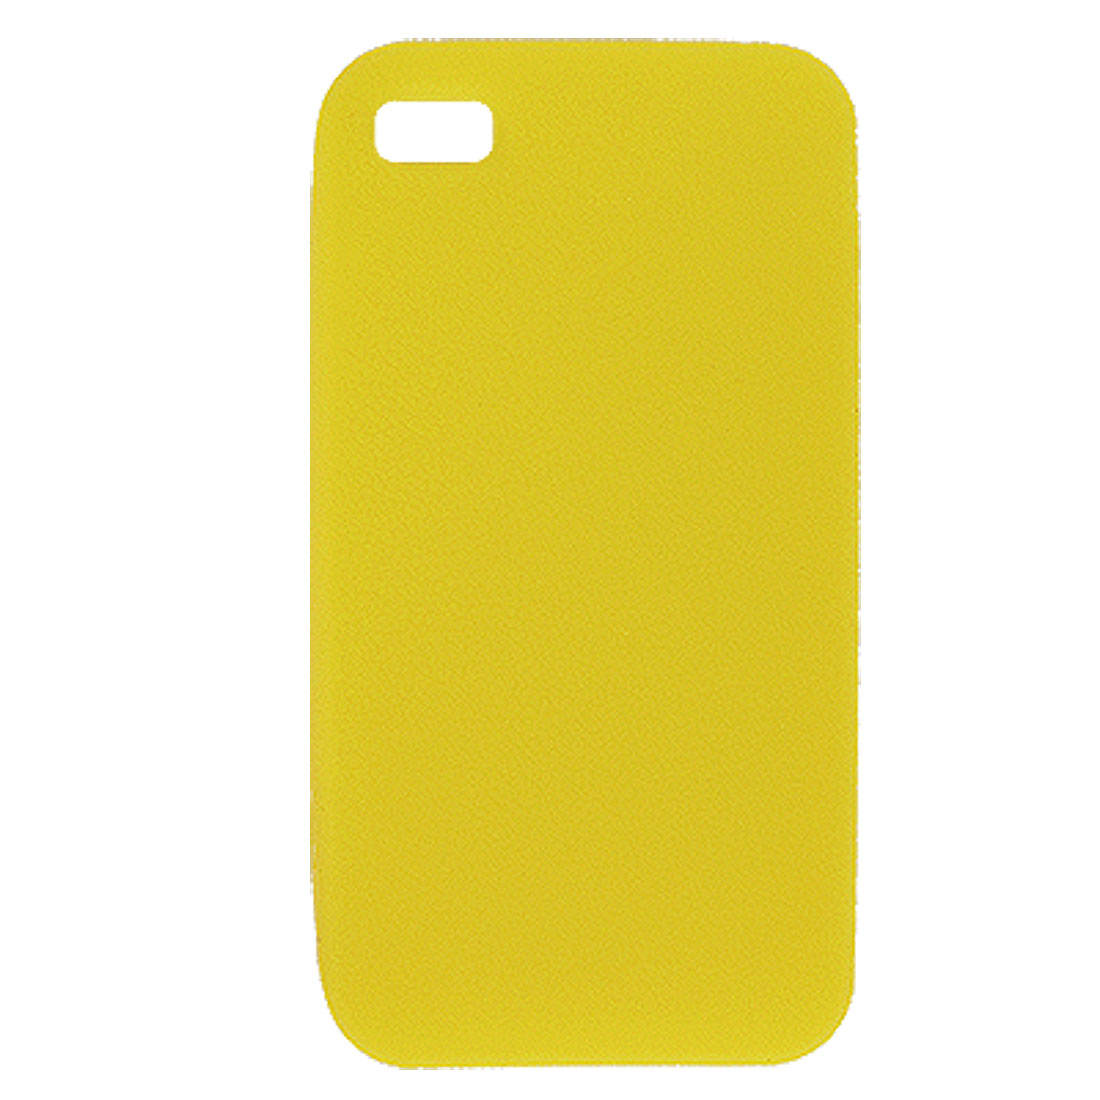 Pure Yellow Silicone Protector Case Cover for Apple iPhone 4 4S 4G